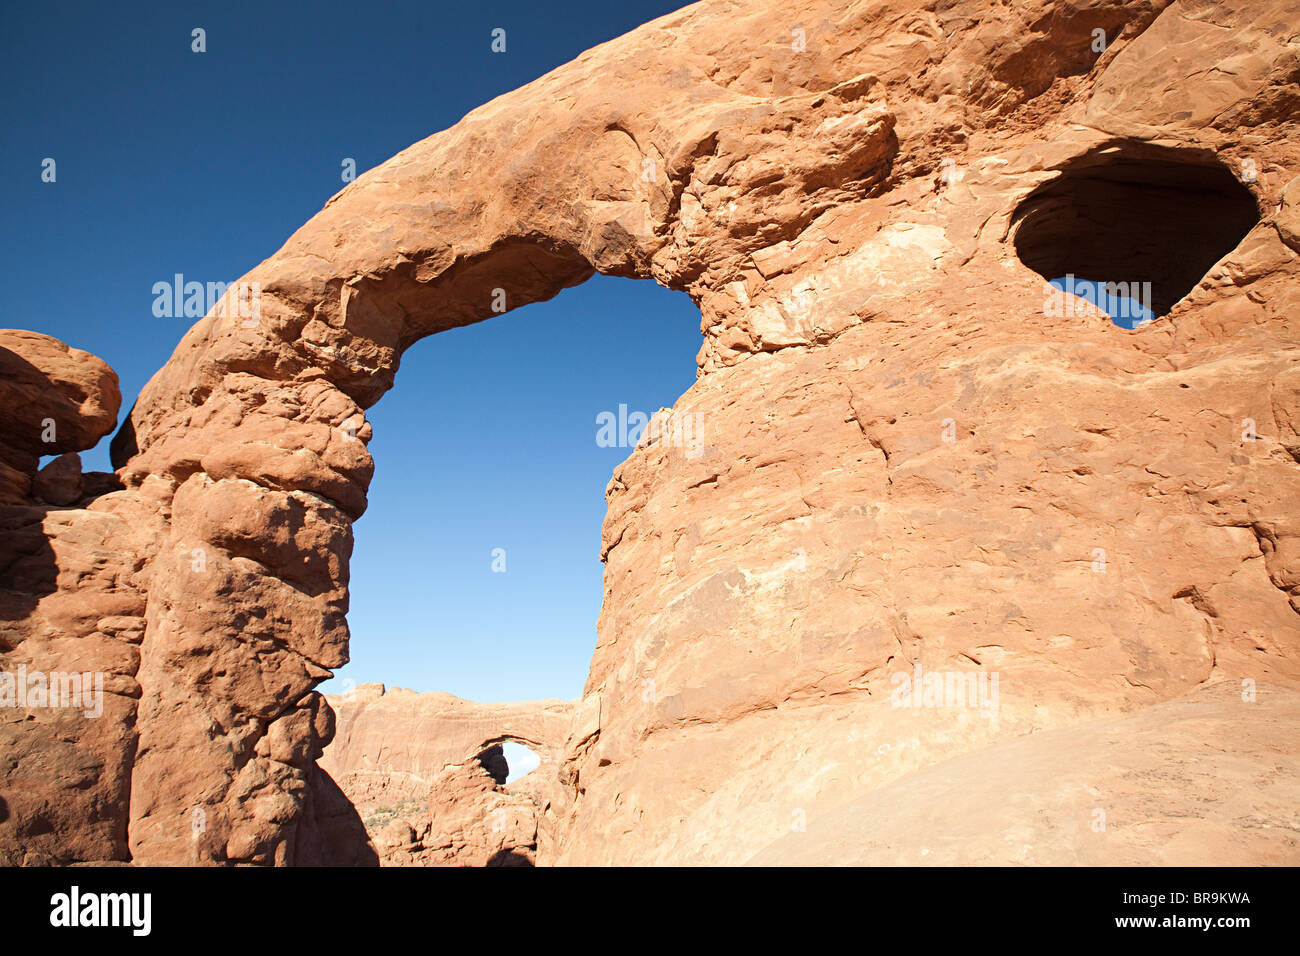 Turret Arch, Arches National Park, Moab, Utah, USA - Stock Image